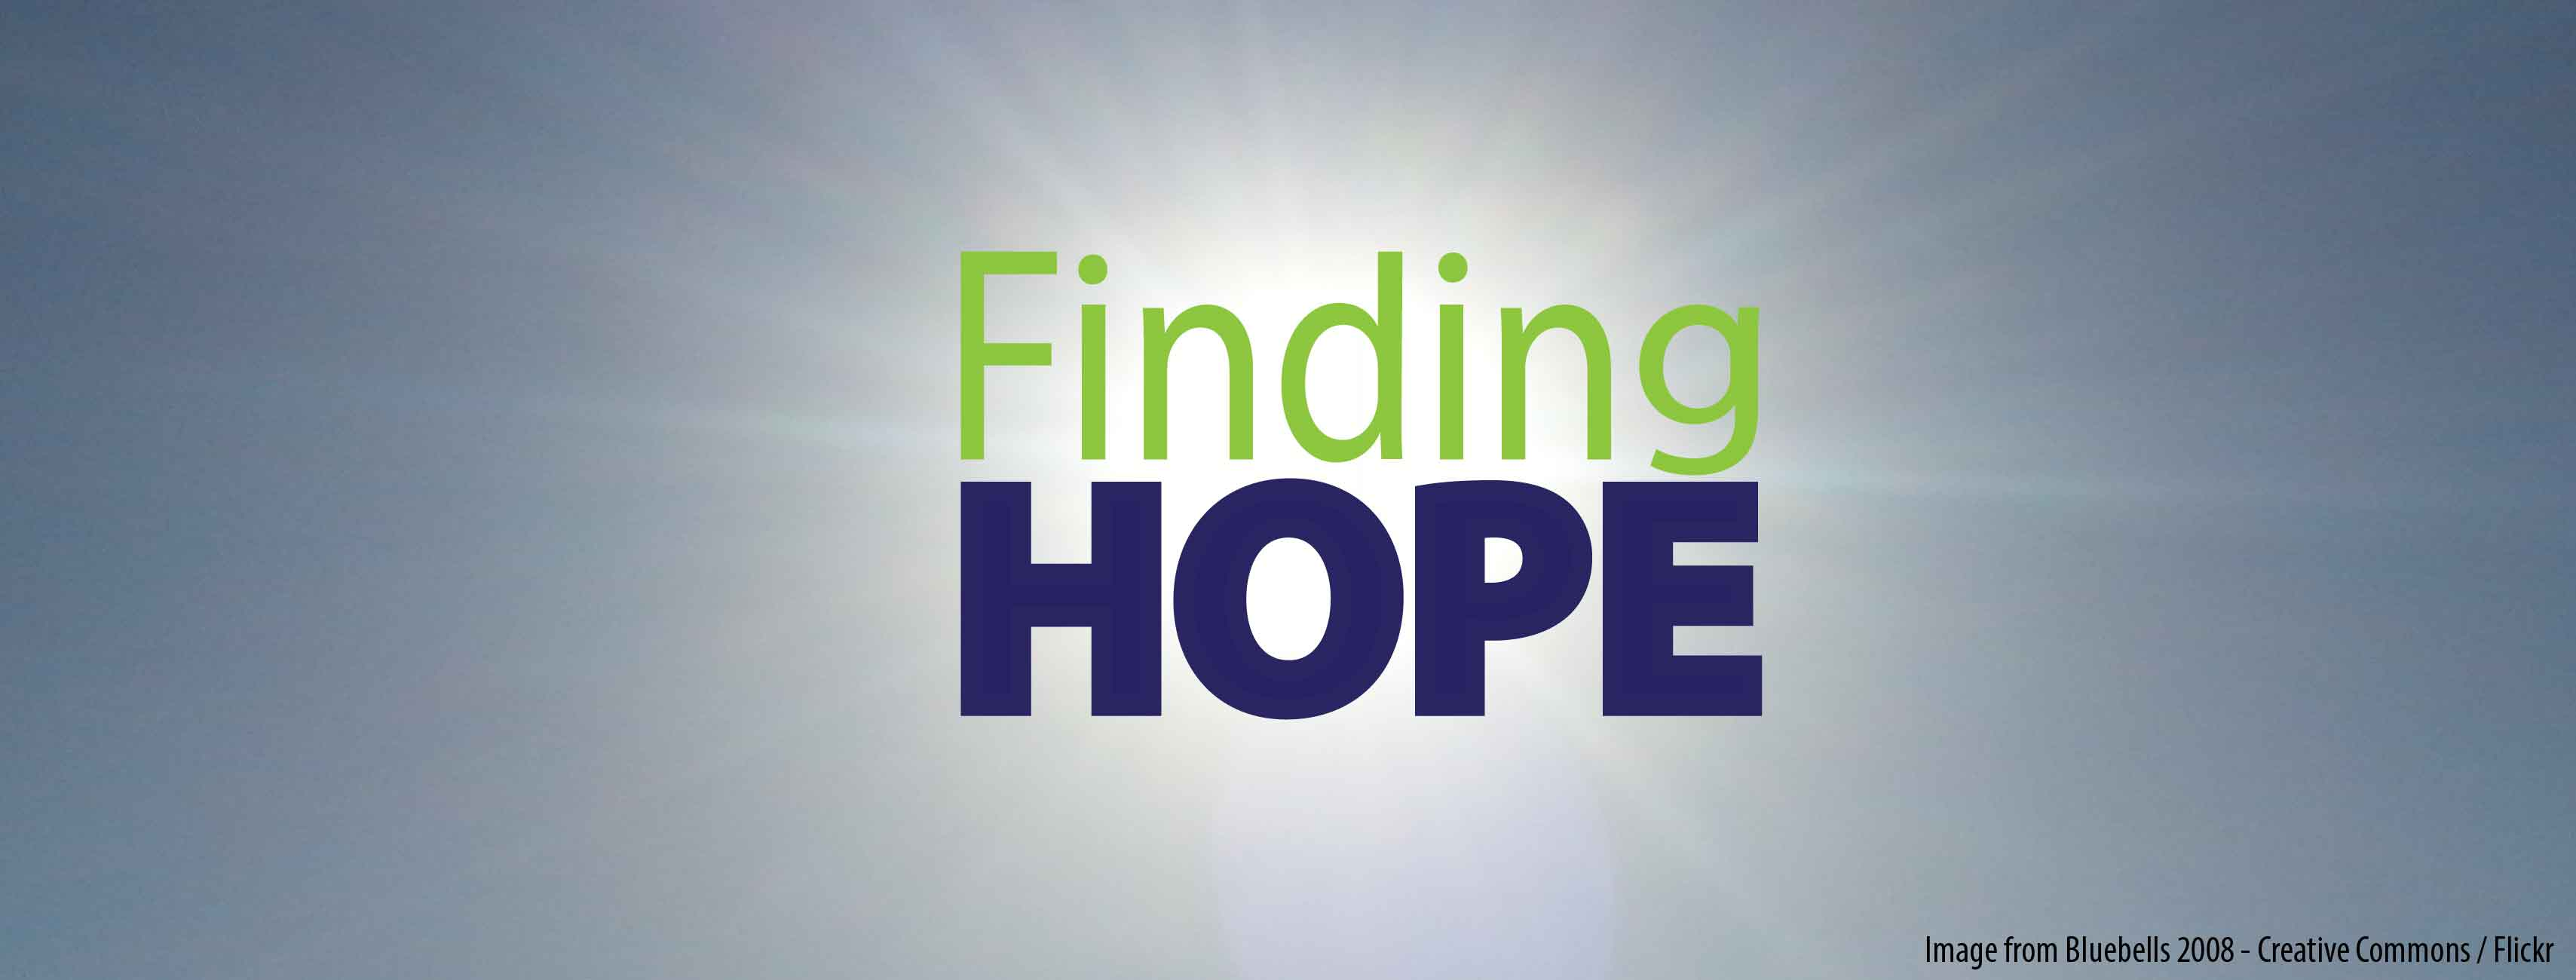 Finding Hope Facebook Cover Photo